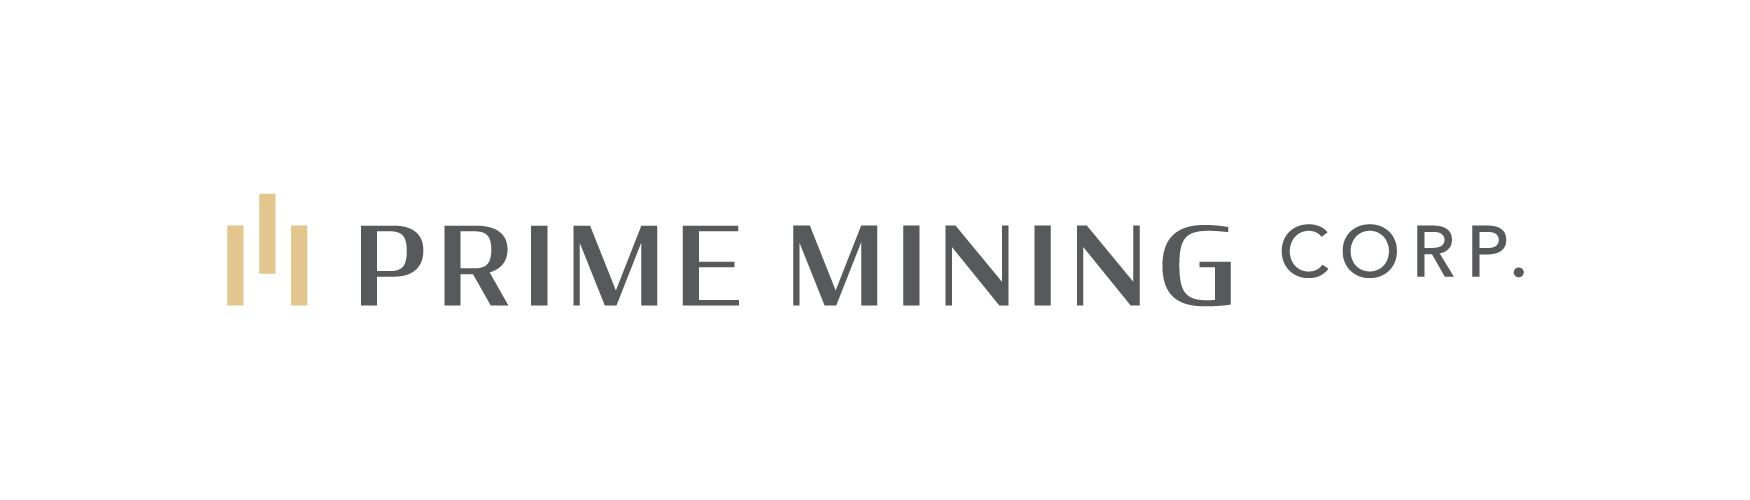 Prime Mining Announces Appointment of New CFO